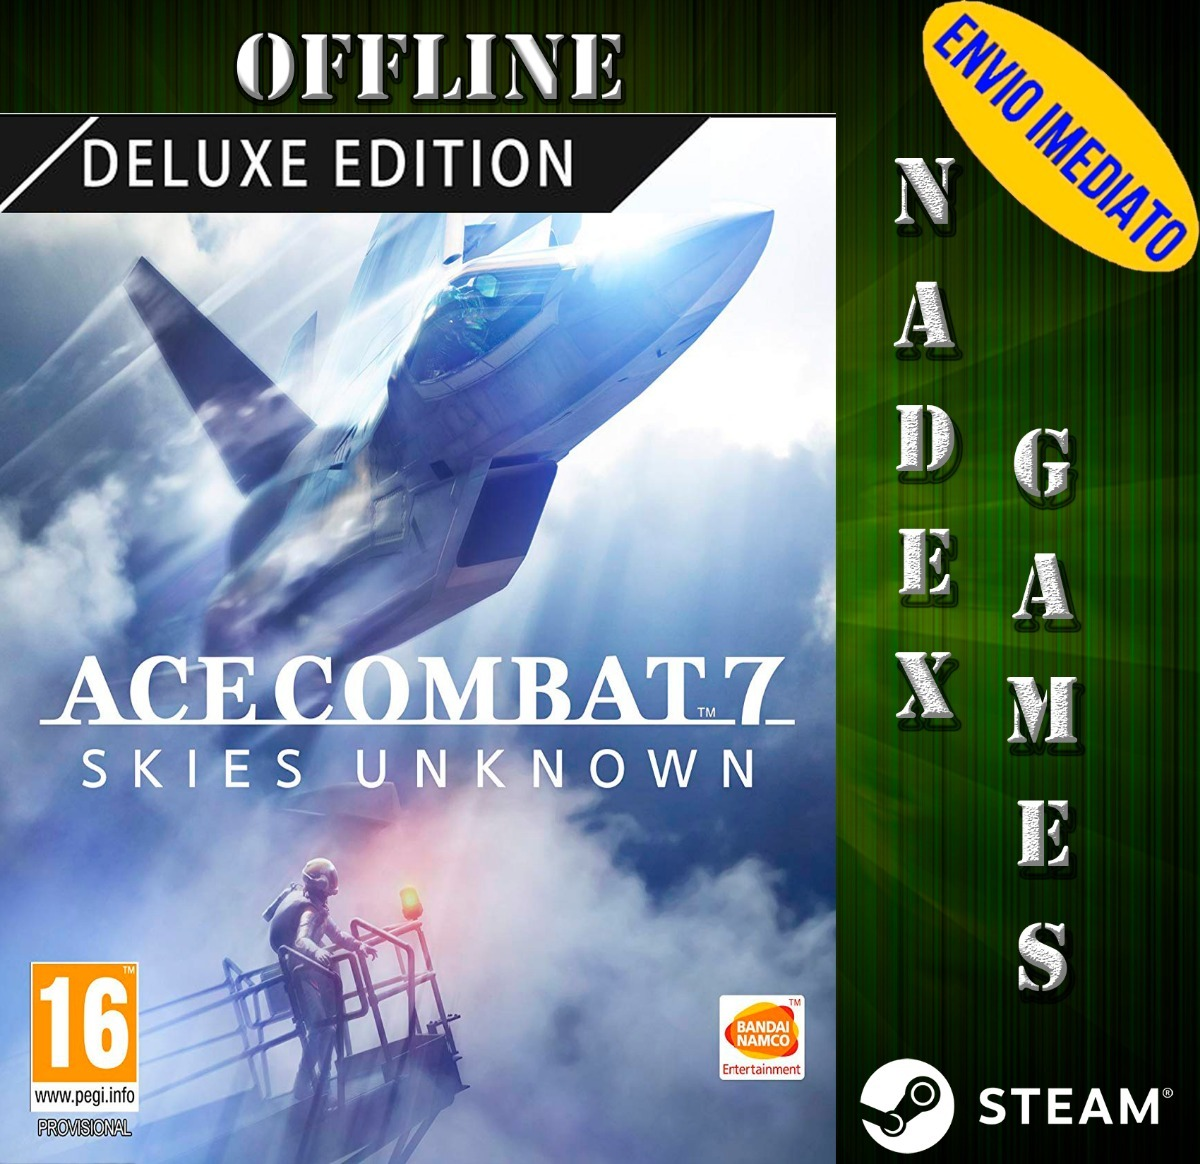 Ace Combat 7: Skies Unknown   Deluxe Edition   Pc   Steam  